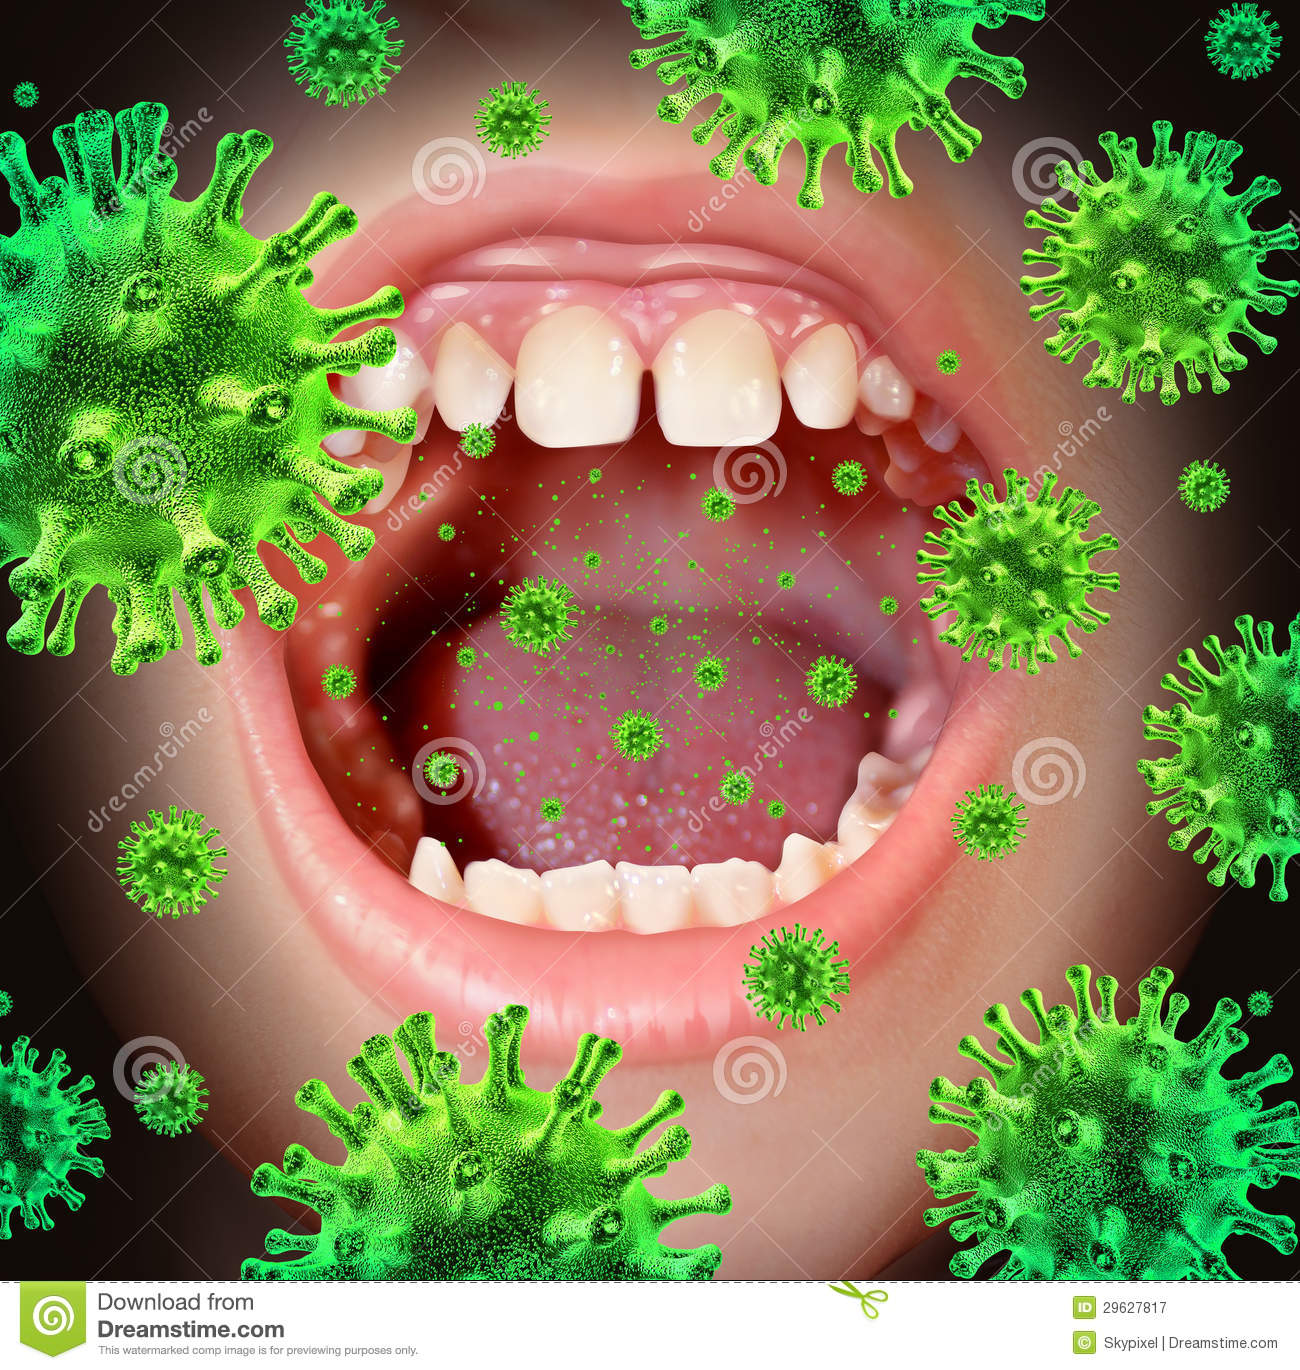 Contagious Disease Royalty Free Stock Photography - Image: 29627817